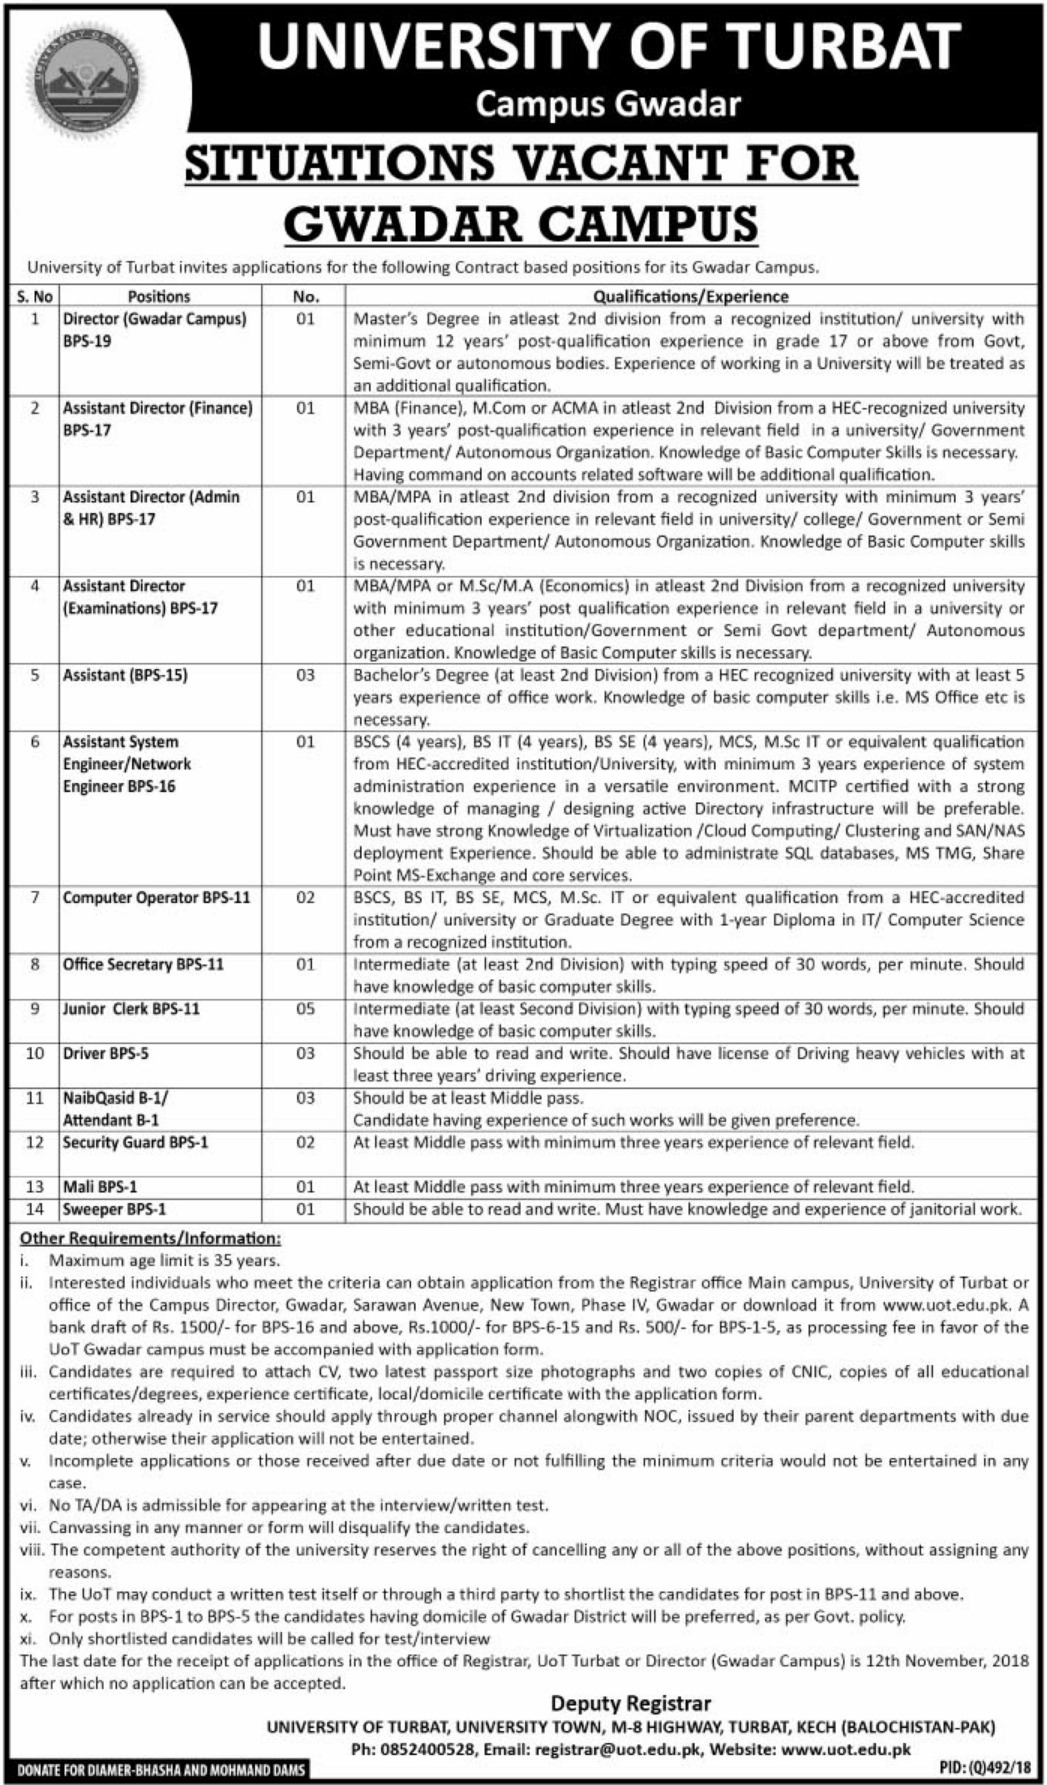 University of Turbat Gwadar Campus Latest Jobs 2018